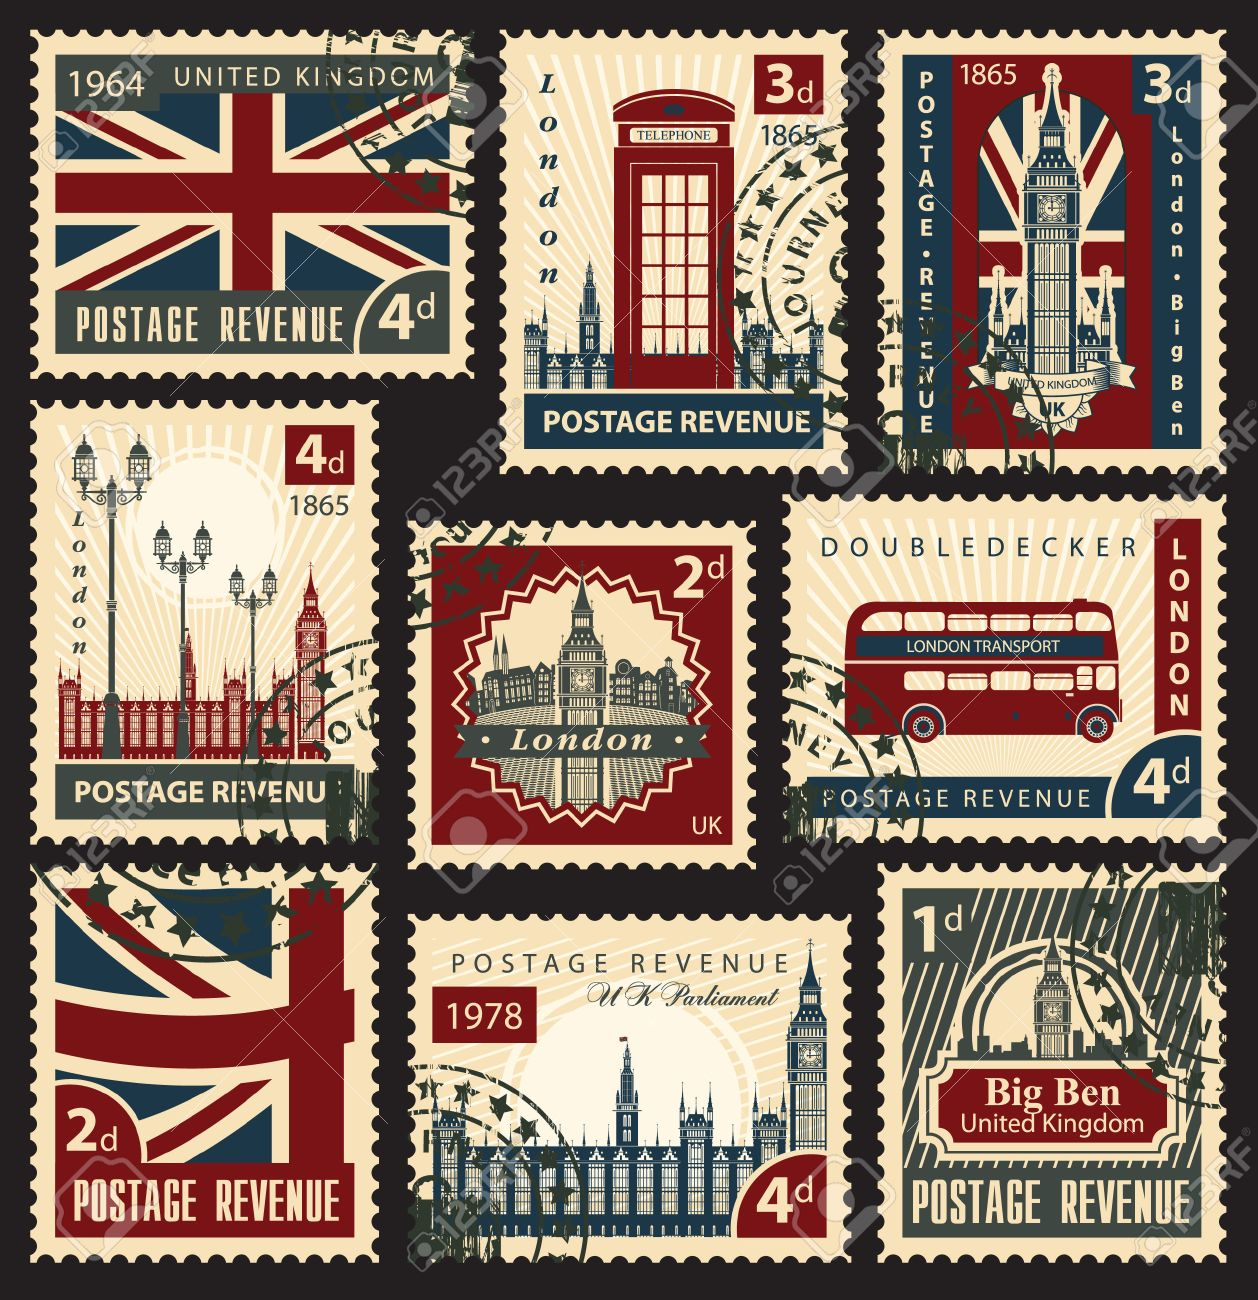 set of stamps with the flag of the UK and London sights - 24549455